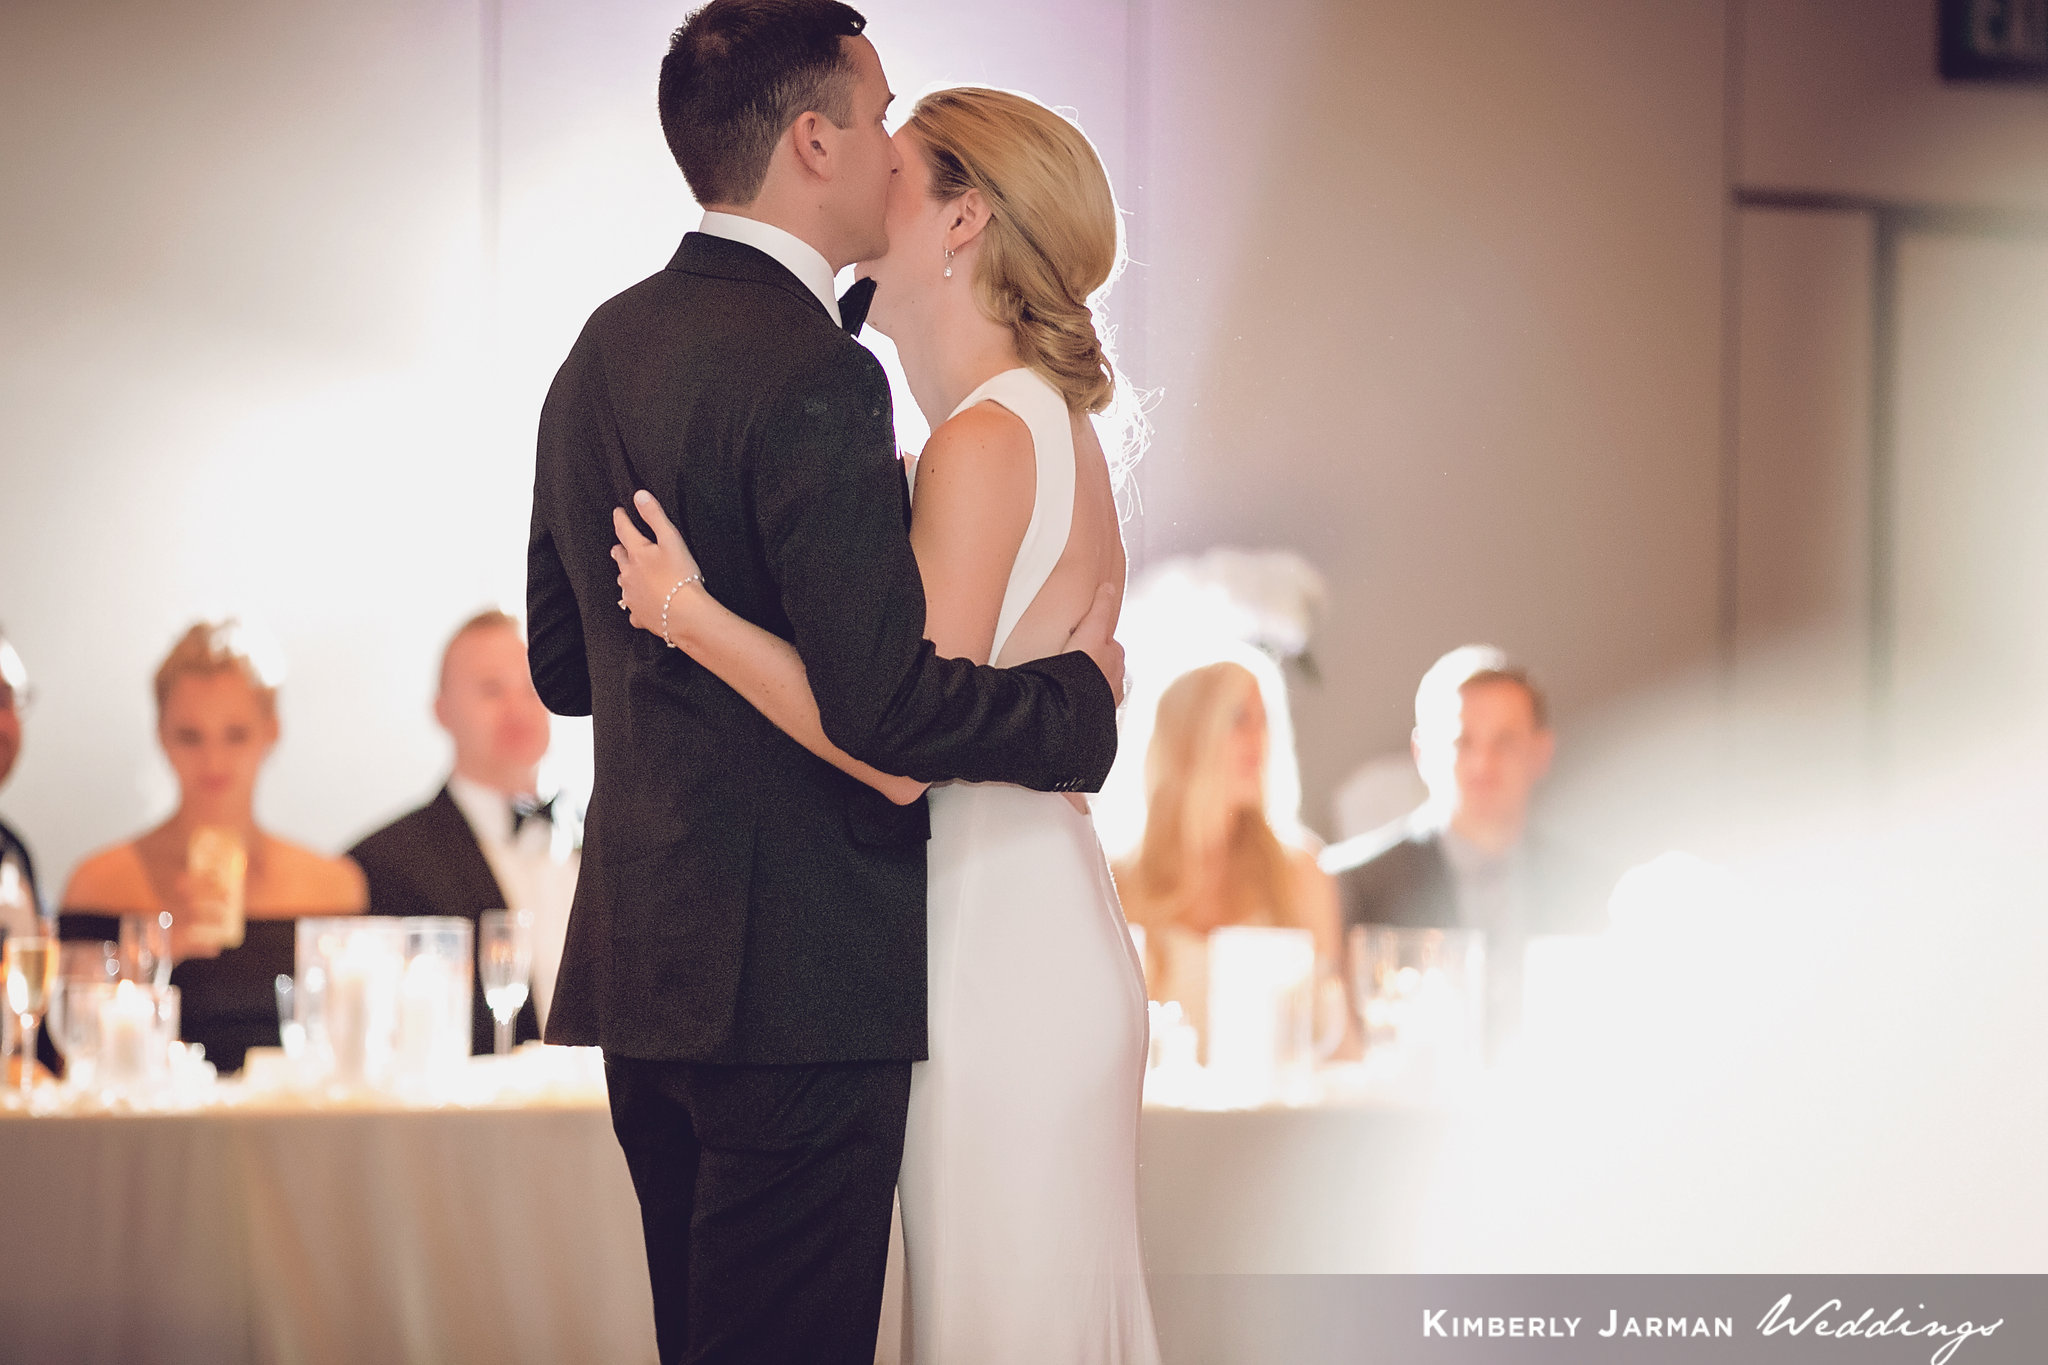 Classic, elegant wedding, white and gold wedding, bride and groom moments